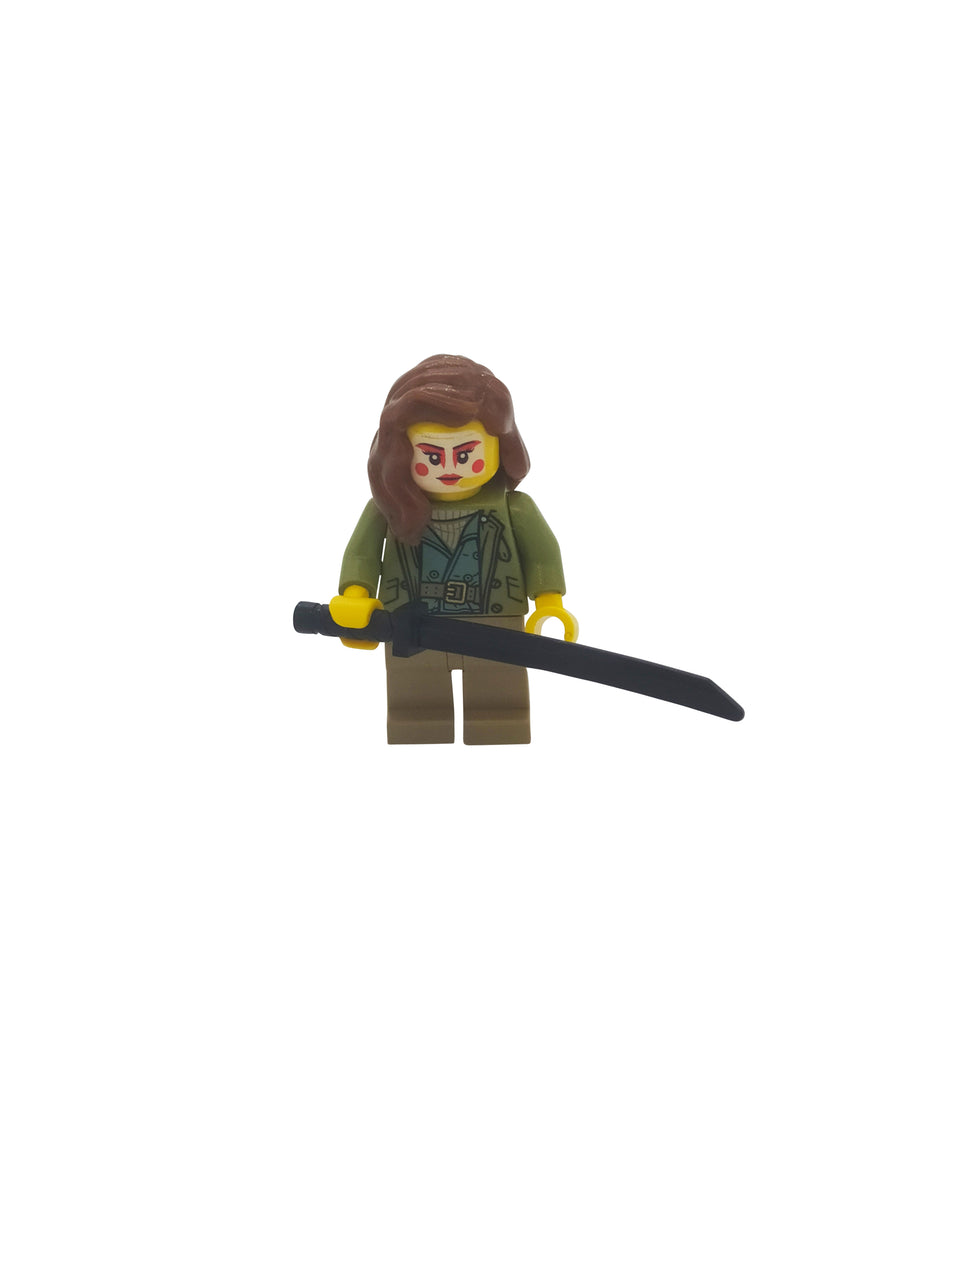 Lego Woman Warrior with sword